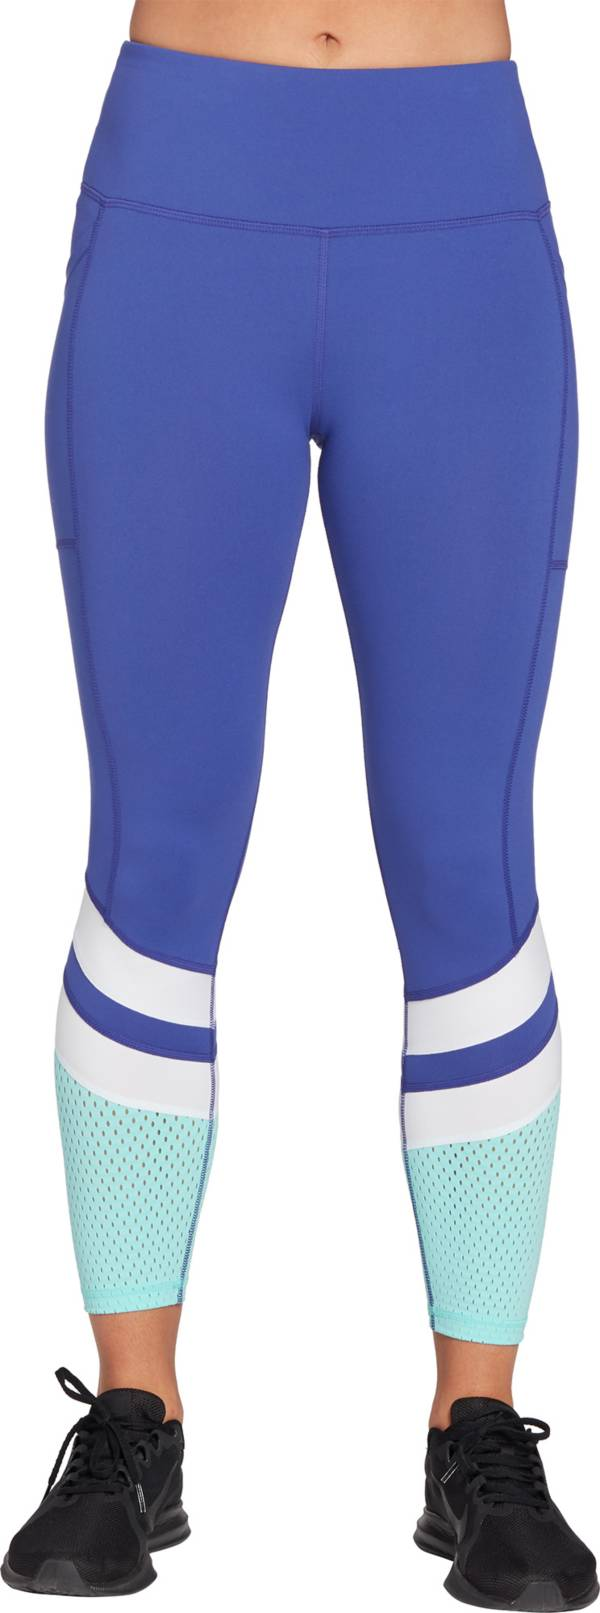 DSG Women's Performance Pieced Perforation 7/8 Tights product image